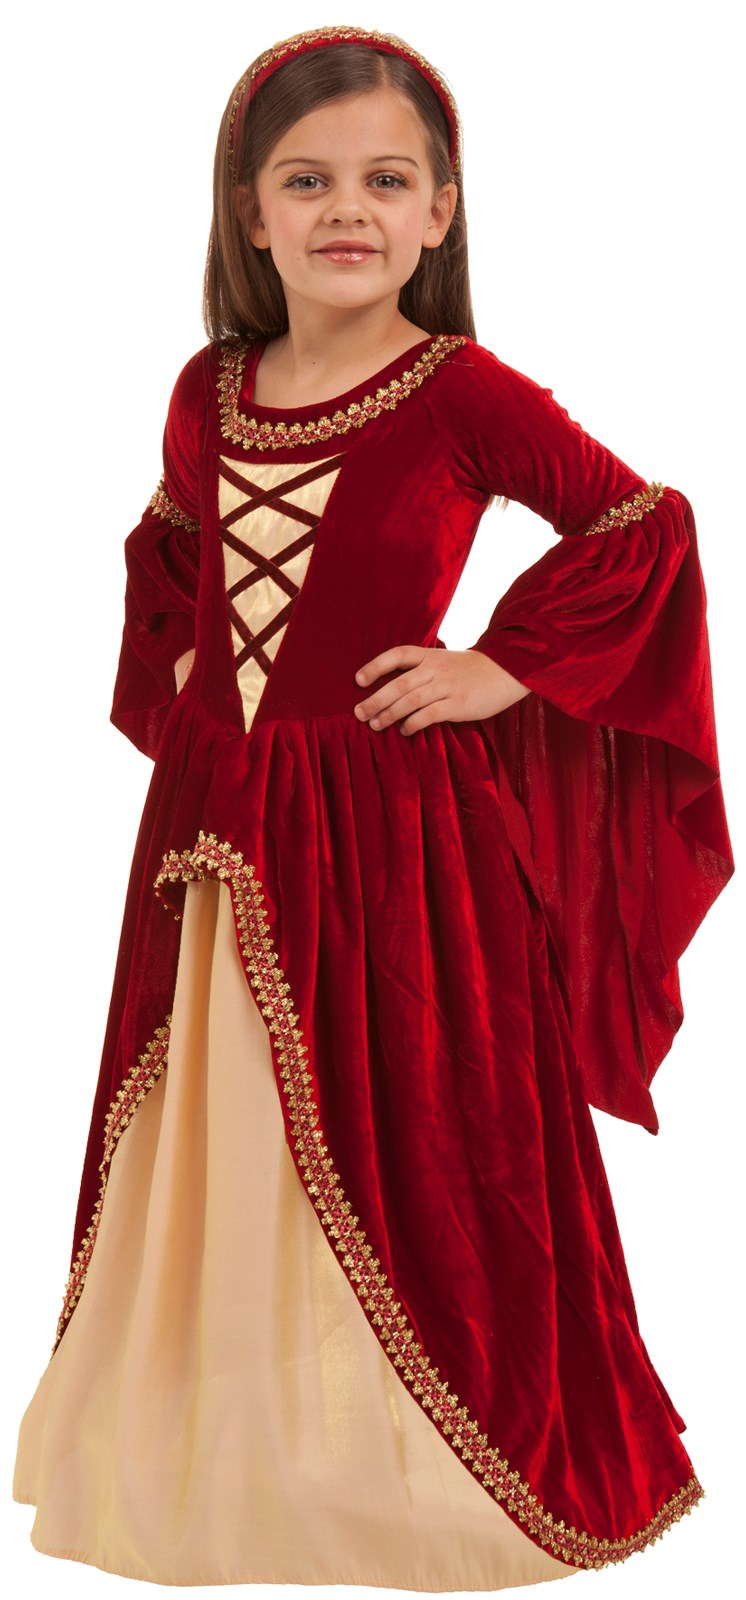 Crimson Renaissance Princess Kids Costume Small (6)